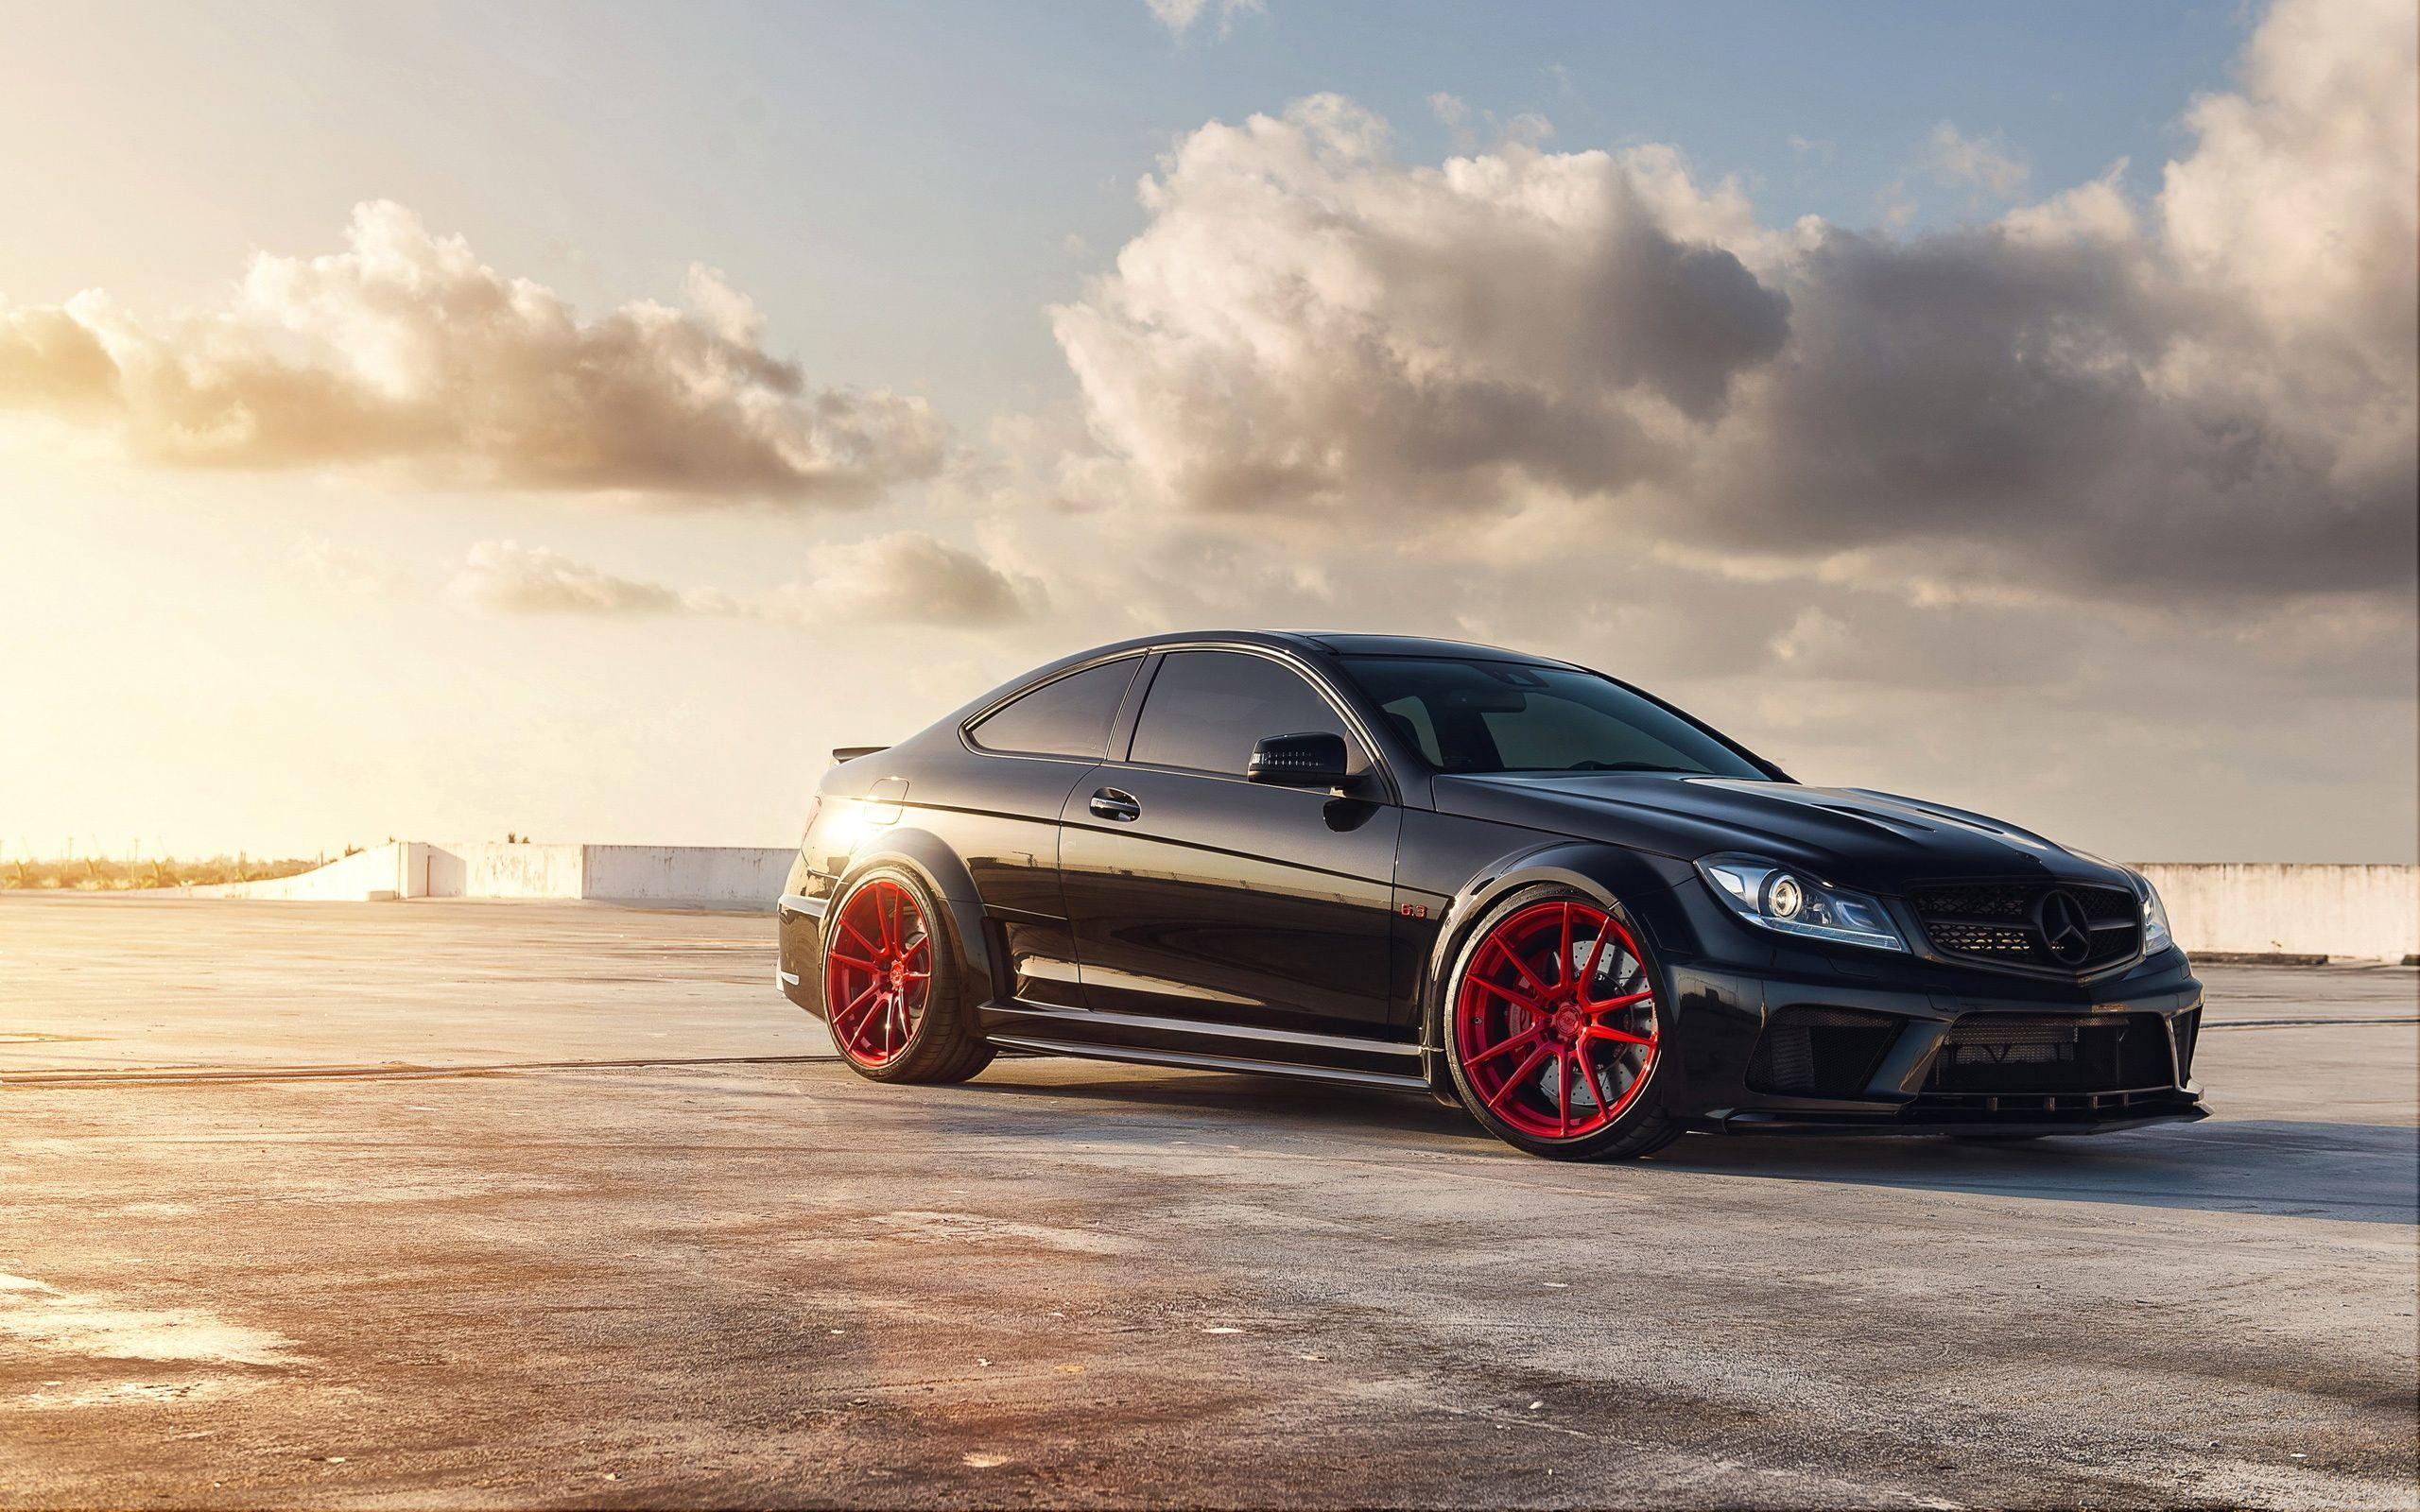 Mercedes Amg C63 Wallpapers Top Free Mercedes Amg C63 Backgrounds Wallpaperaccess